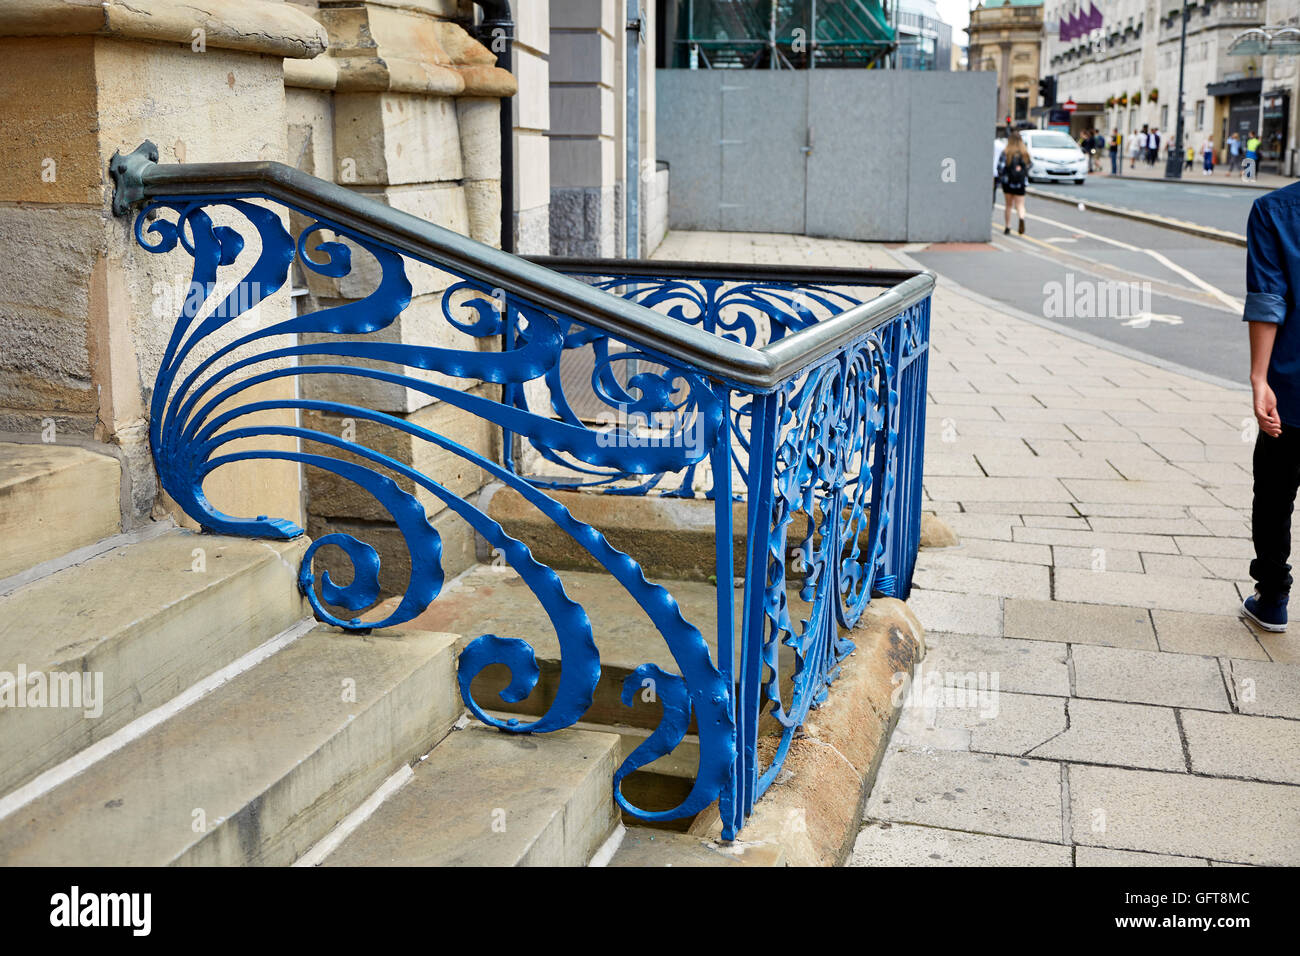 Wrought Iron Artwork Blue Painted Art Nouveau Wrought Iron Railings Swirling Ribbons